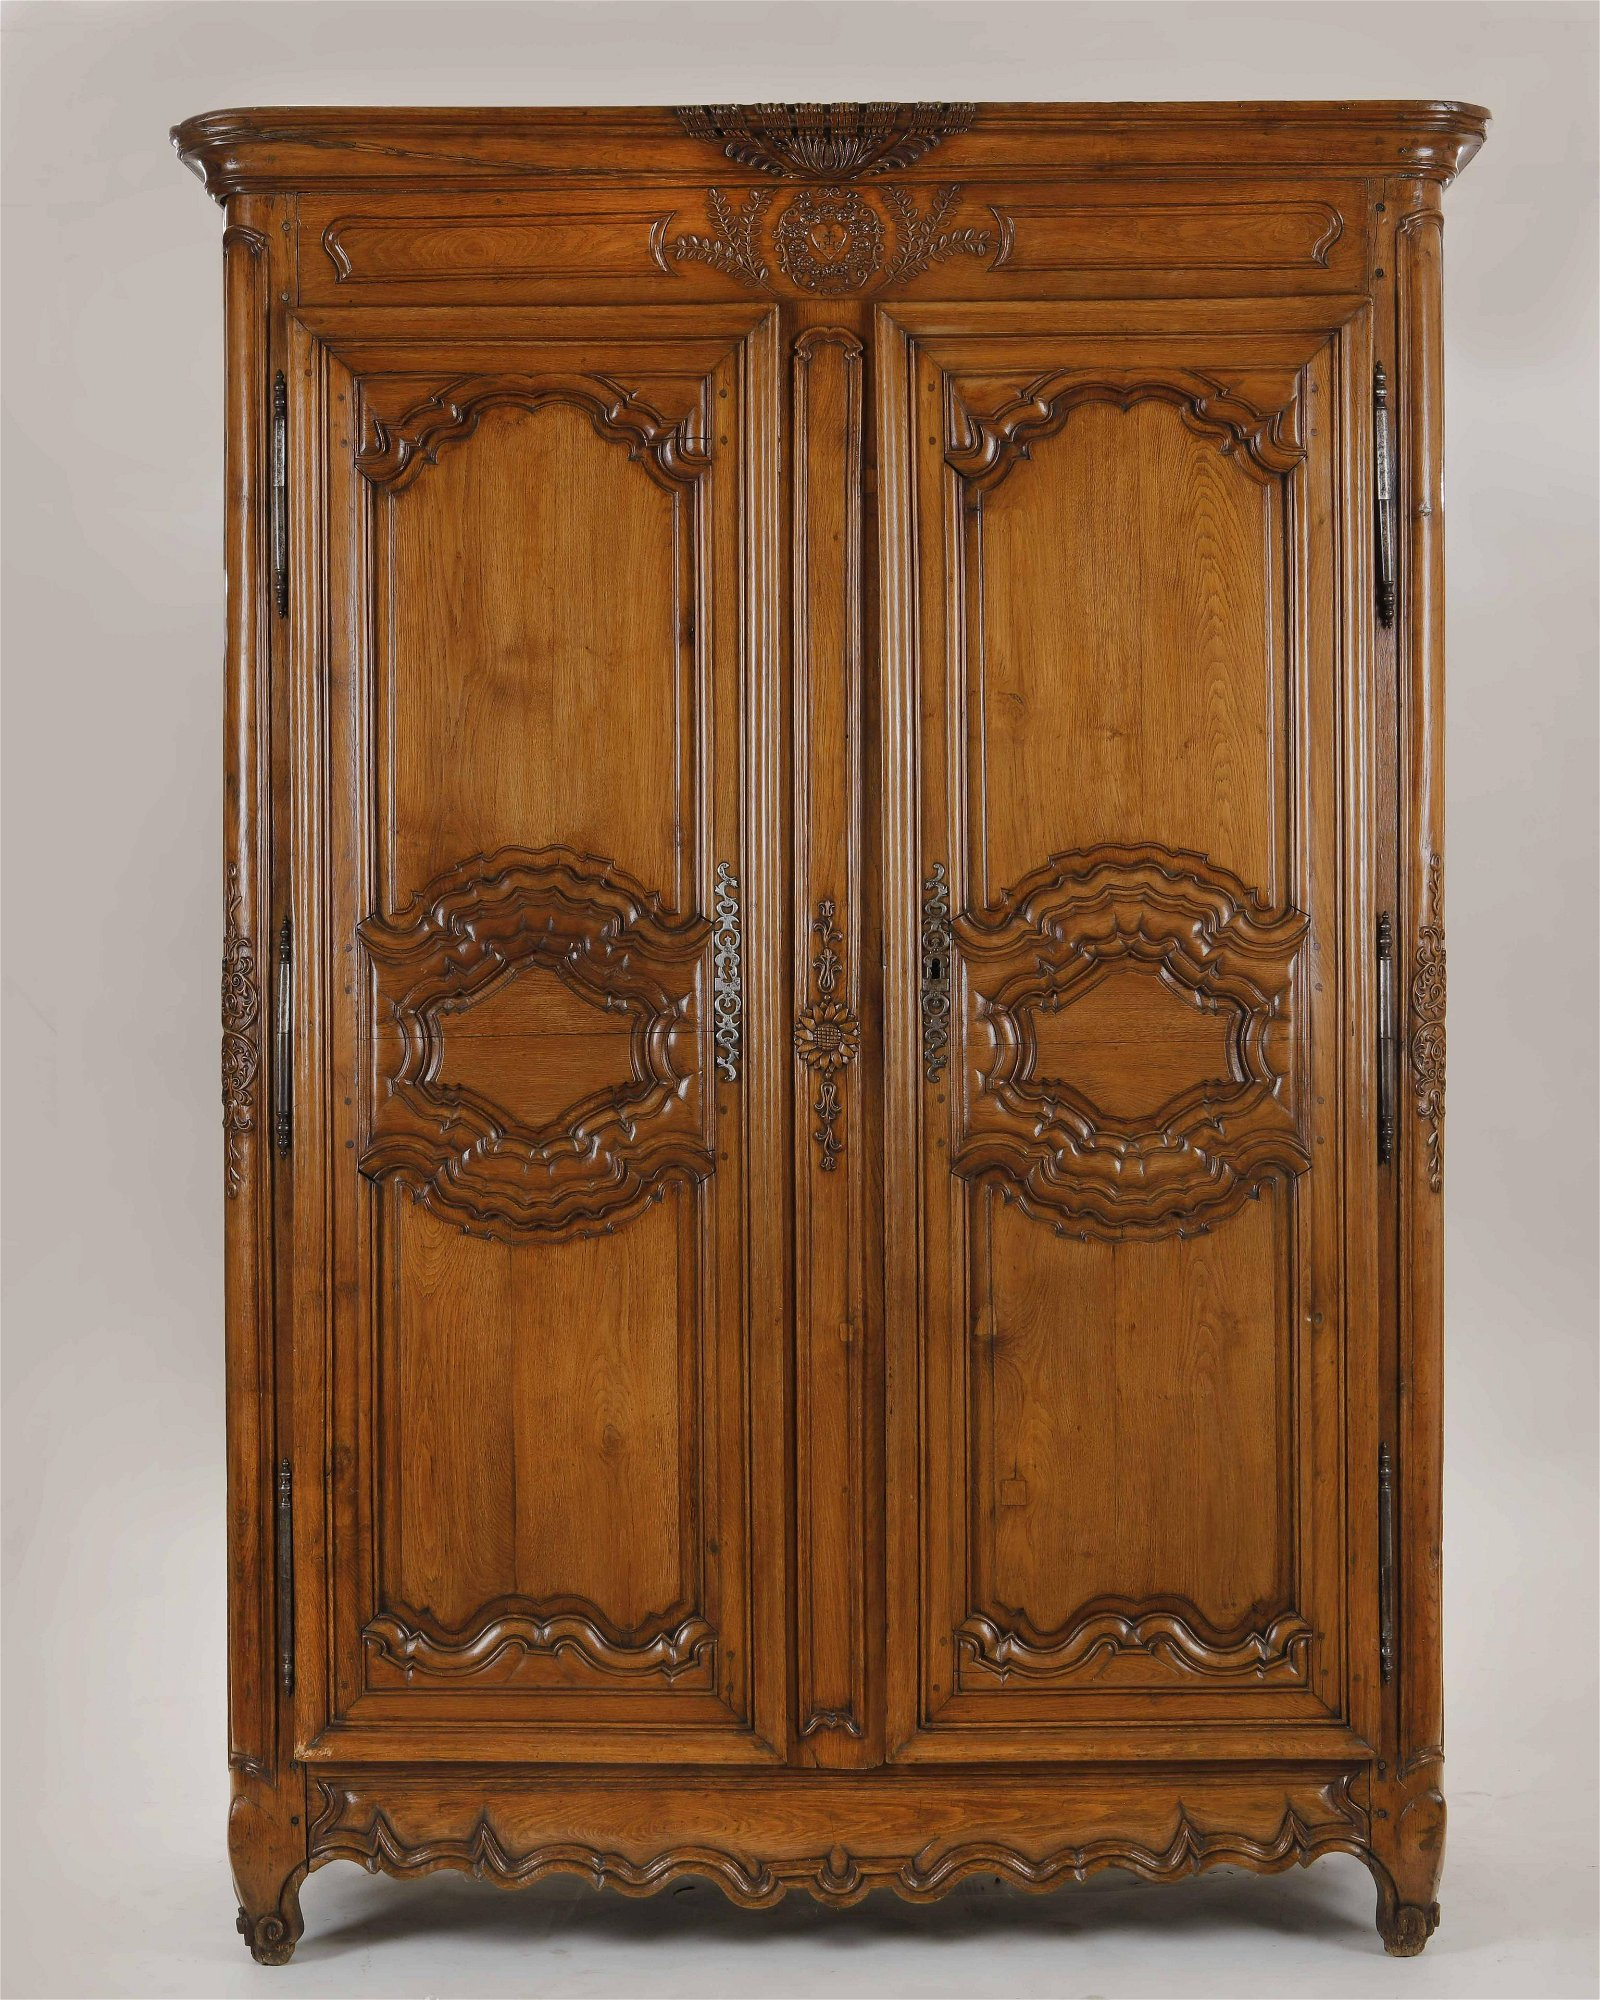 A French Provincial carved oak armoire